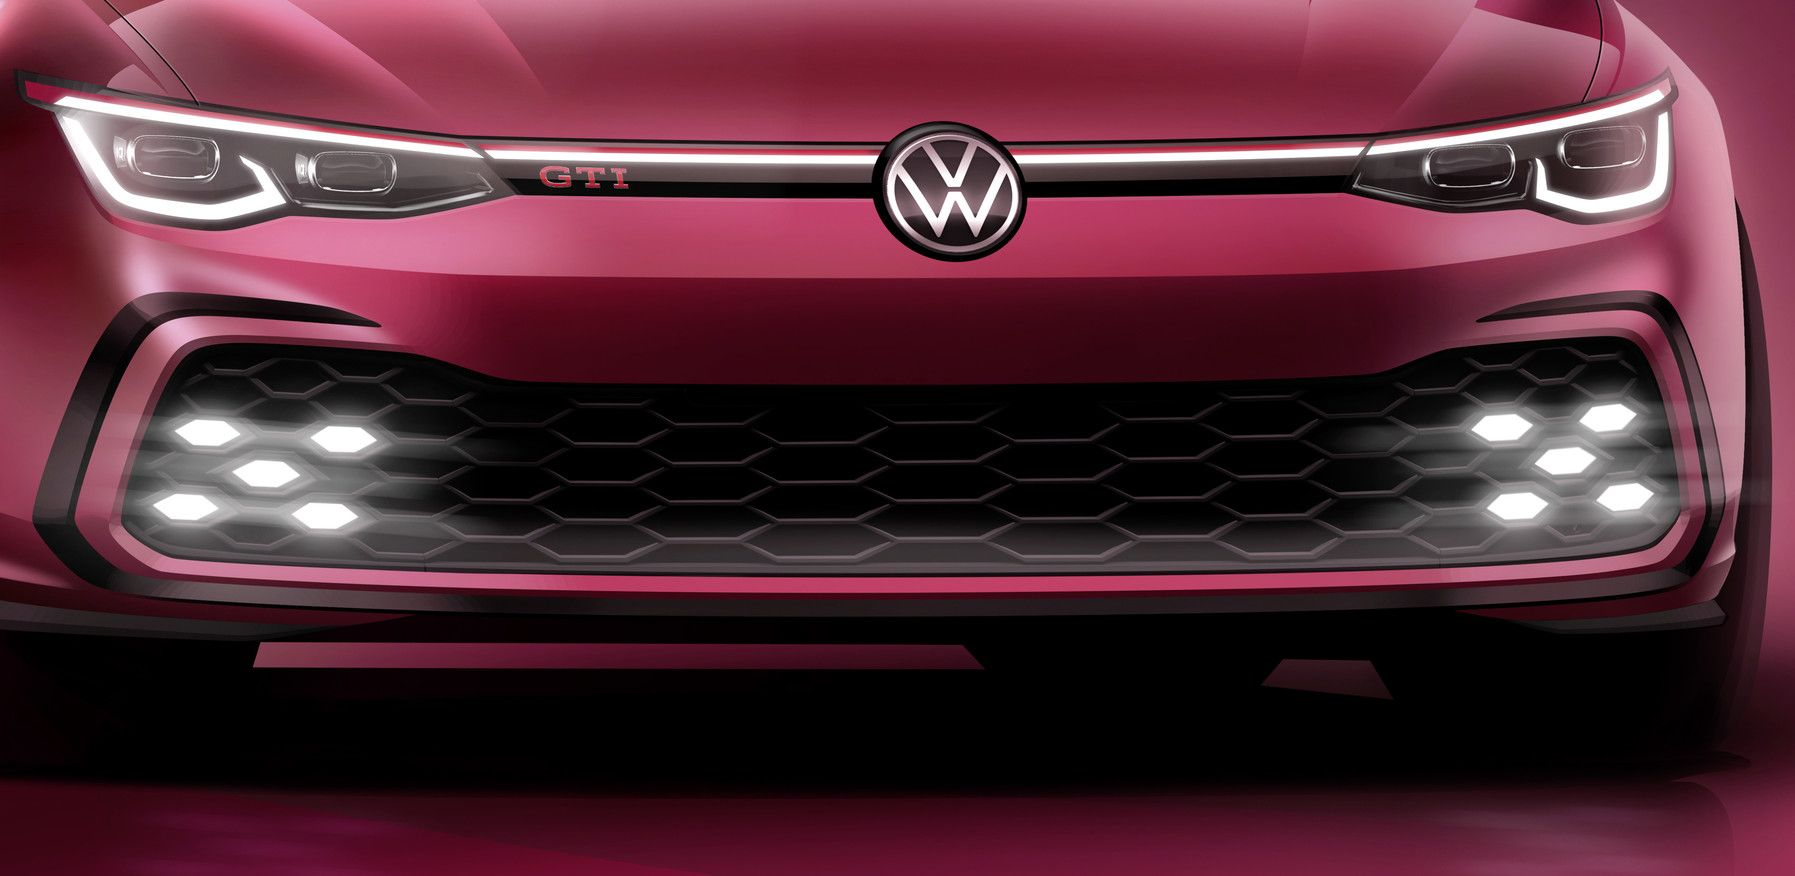 Volkswagen Officially Tease Golf 8 Gti Ahead Of Geneva Reveal Golf Gti Volkswagen Golf Gti Volkswagen